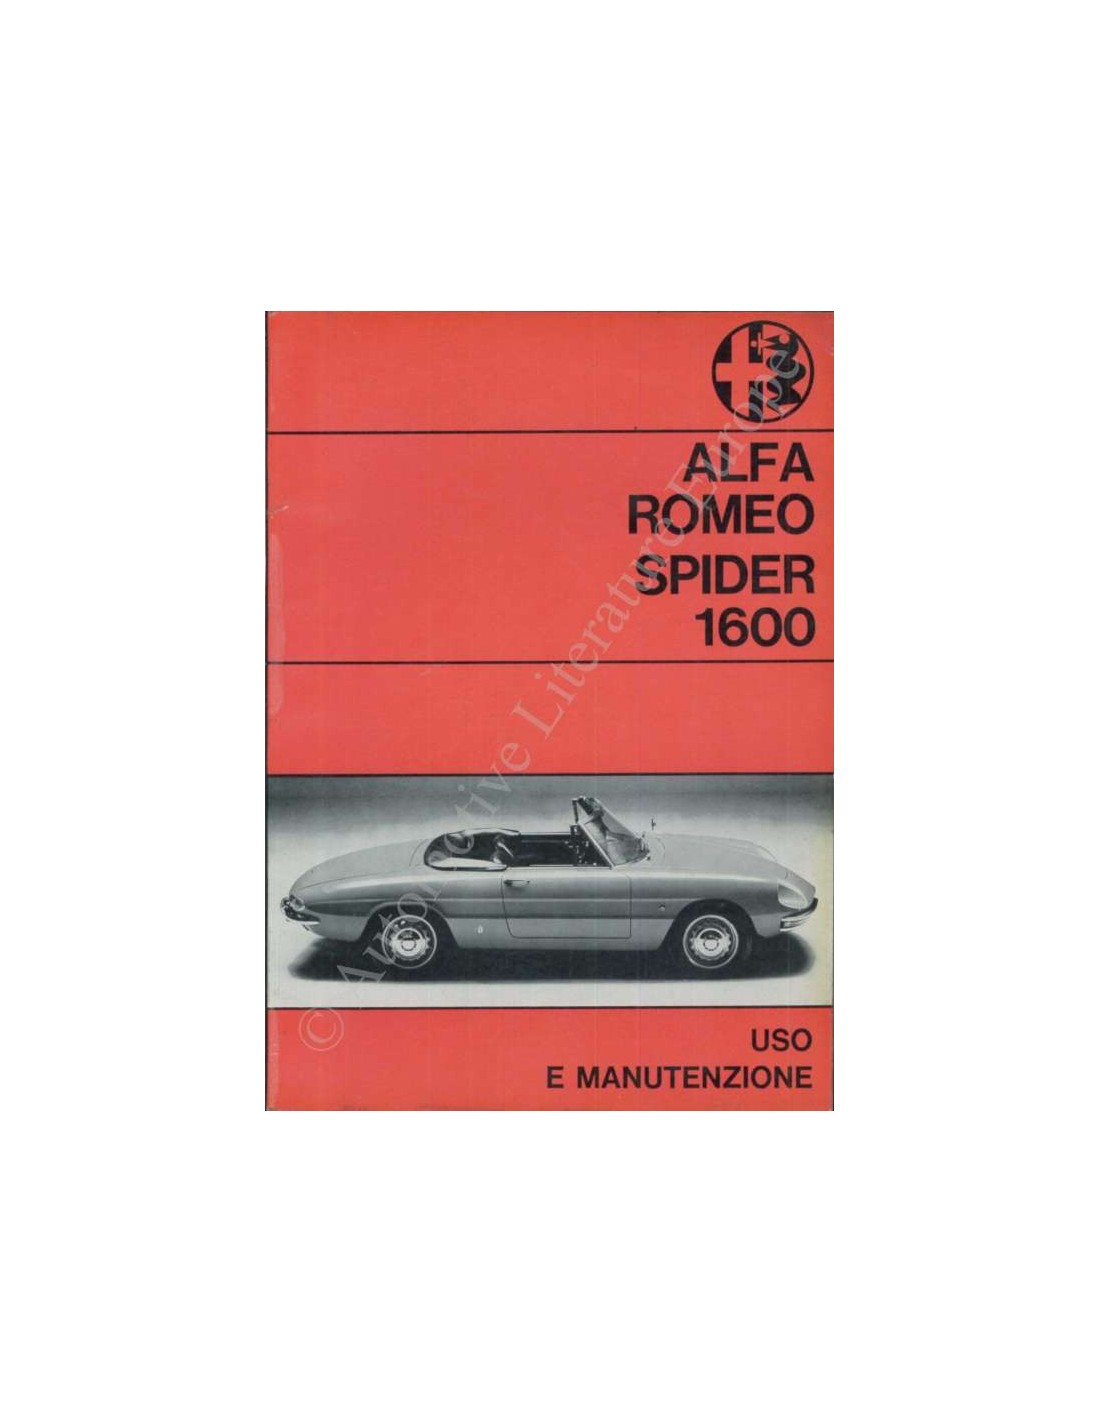 1967 alfa romeo spider 1600 owners manual italian rh autolit eu alfa romeo spider 916 manual alfa spider manual download